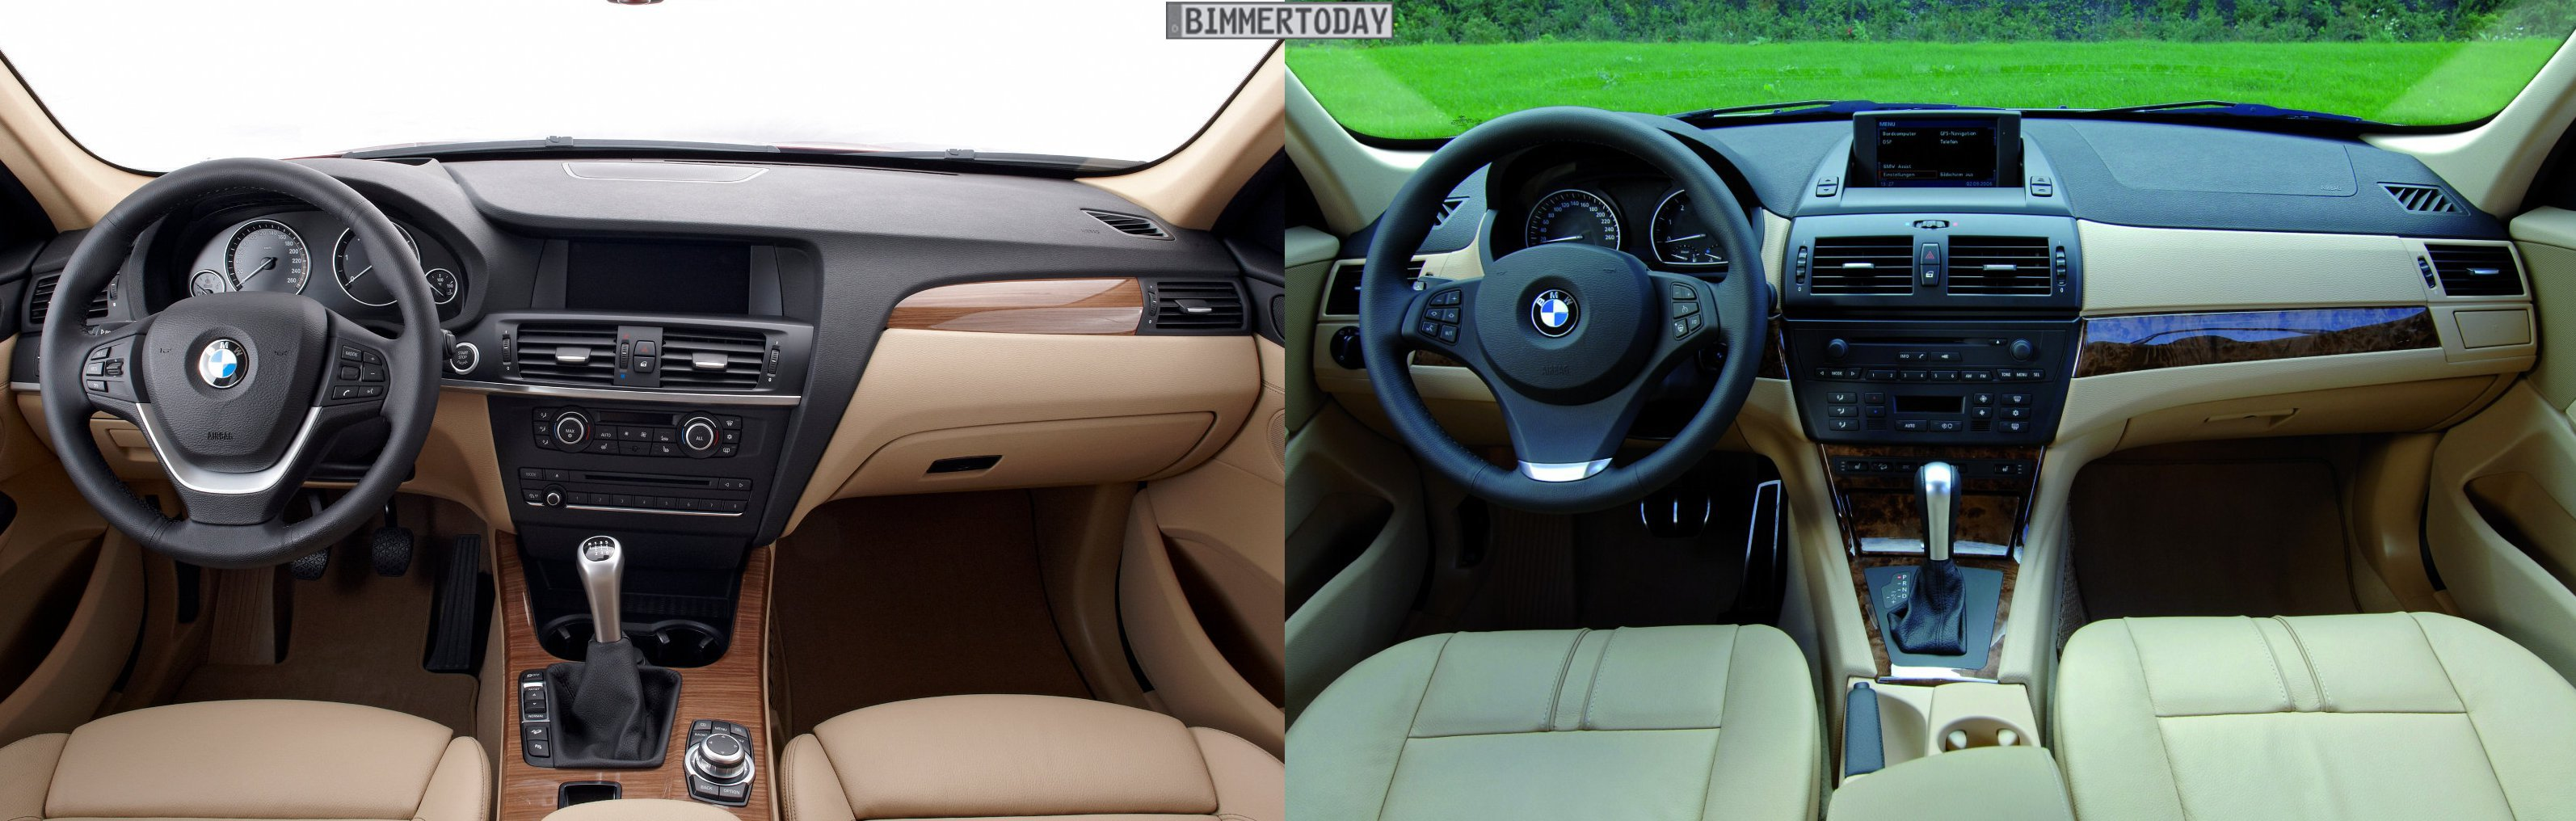 Photo Comparison: Old vs. New BMW X3